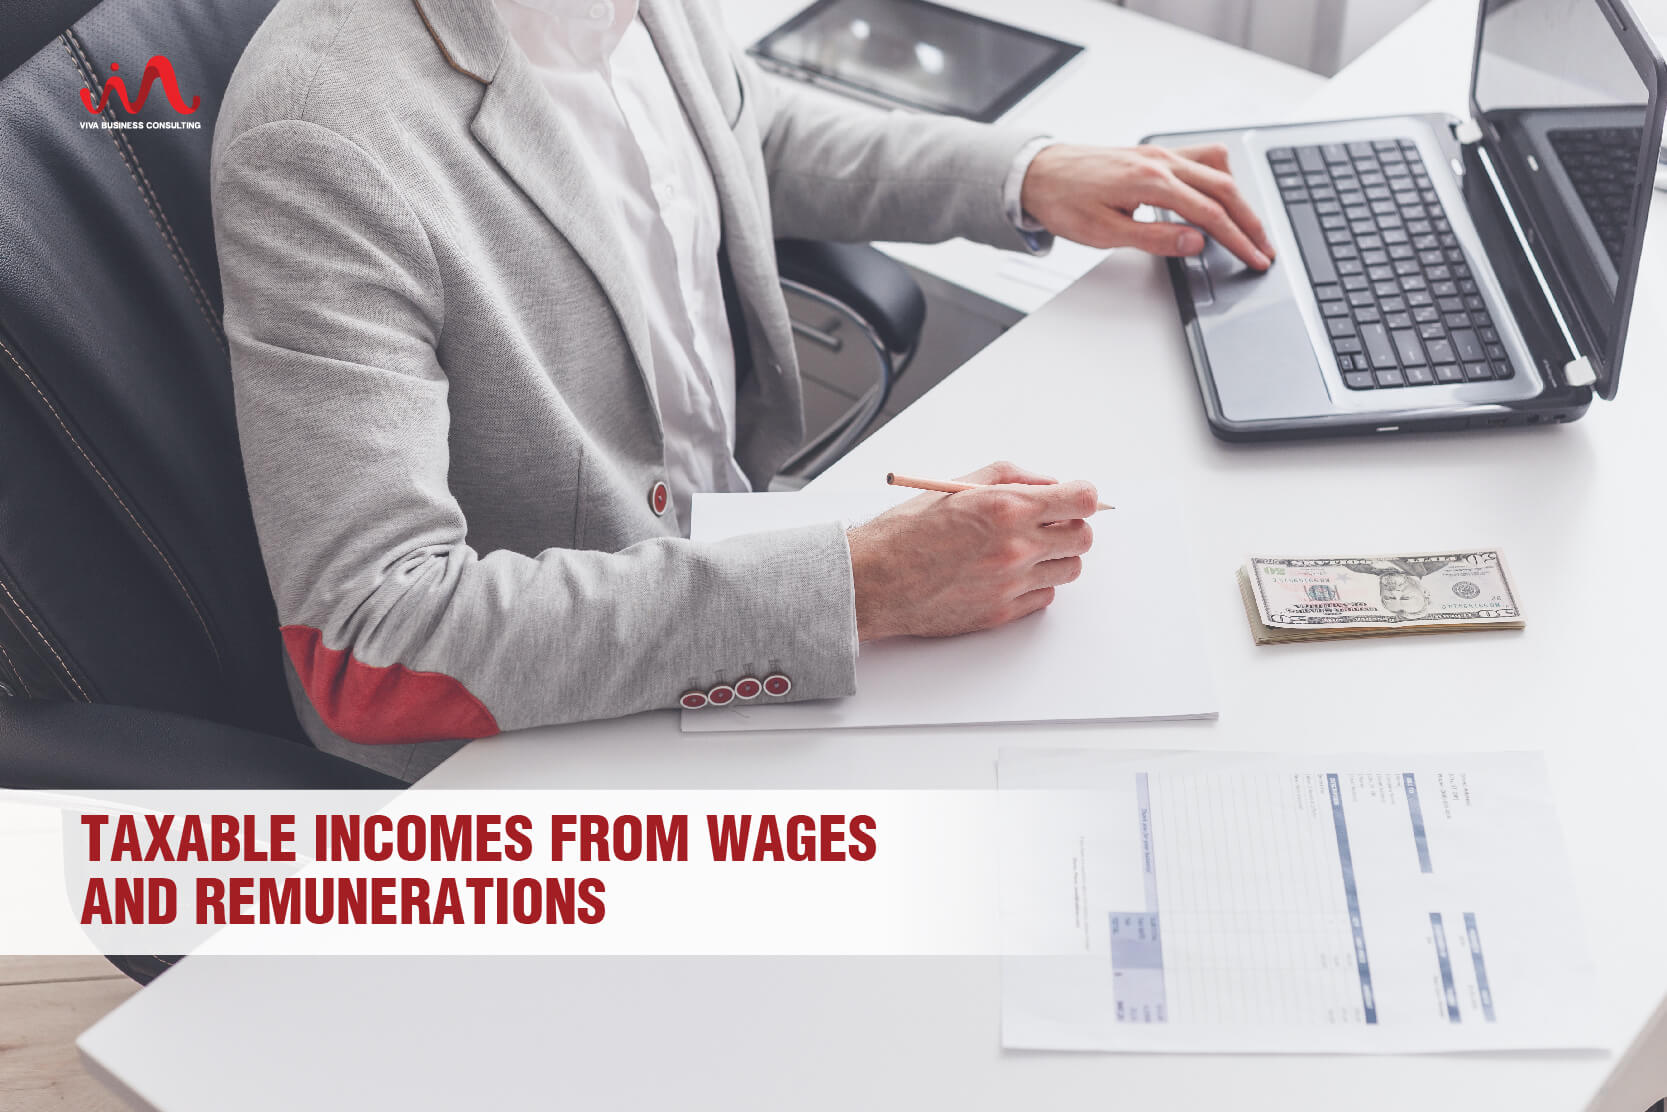 Taxable Incomes - Taxable Incomes From Wages And Remunerations